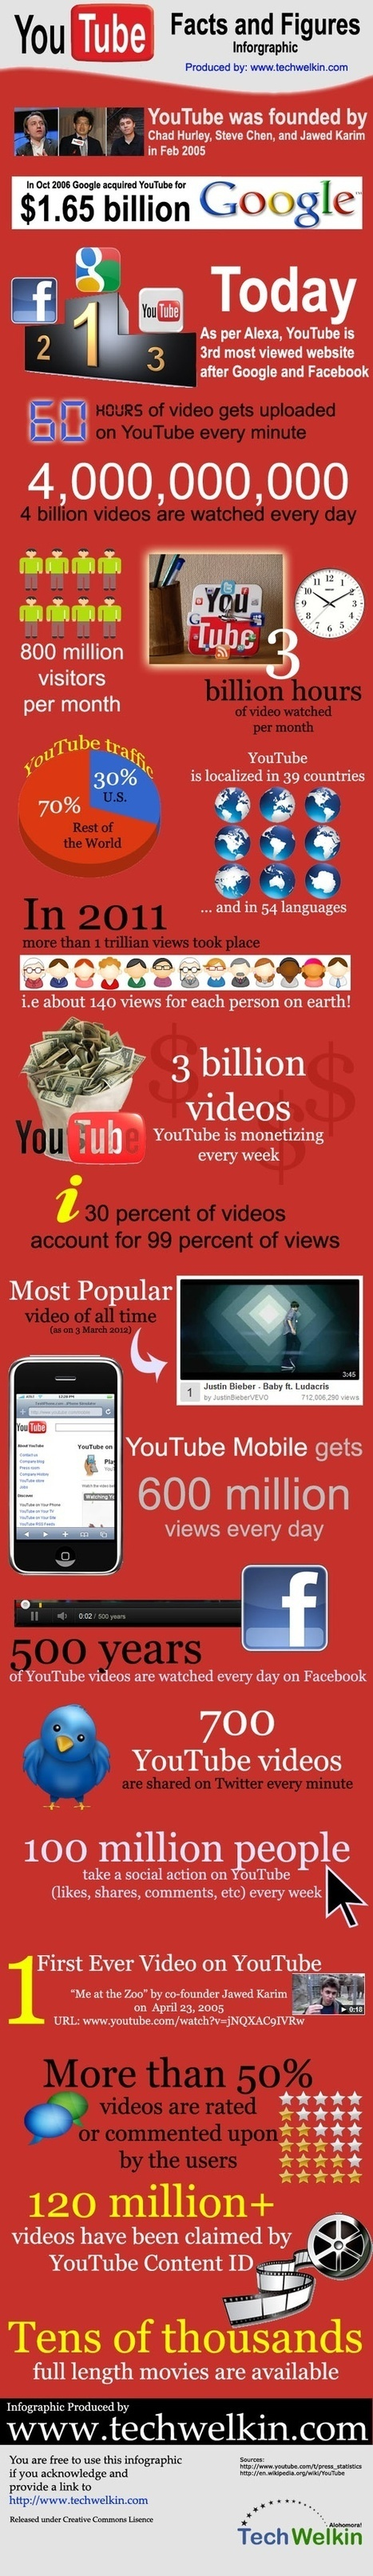 35 Mind Numbing YouTube Facts, Figures and Statistics [Infographic]   nicheprof on social media   Scoop.it